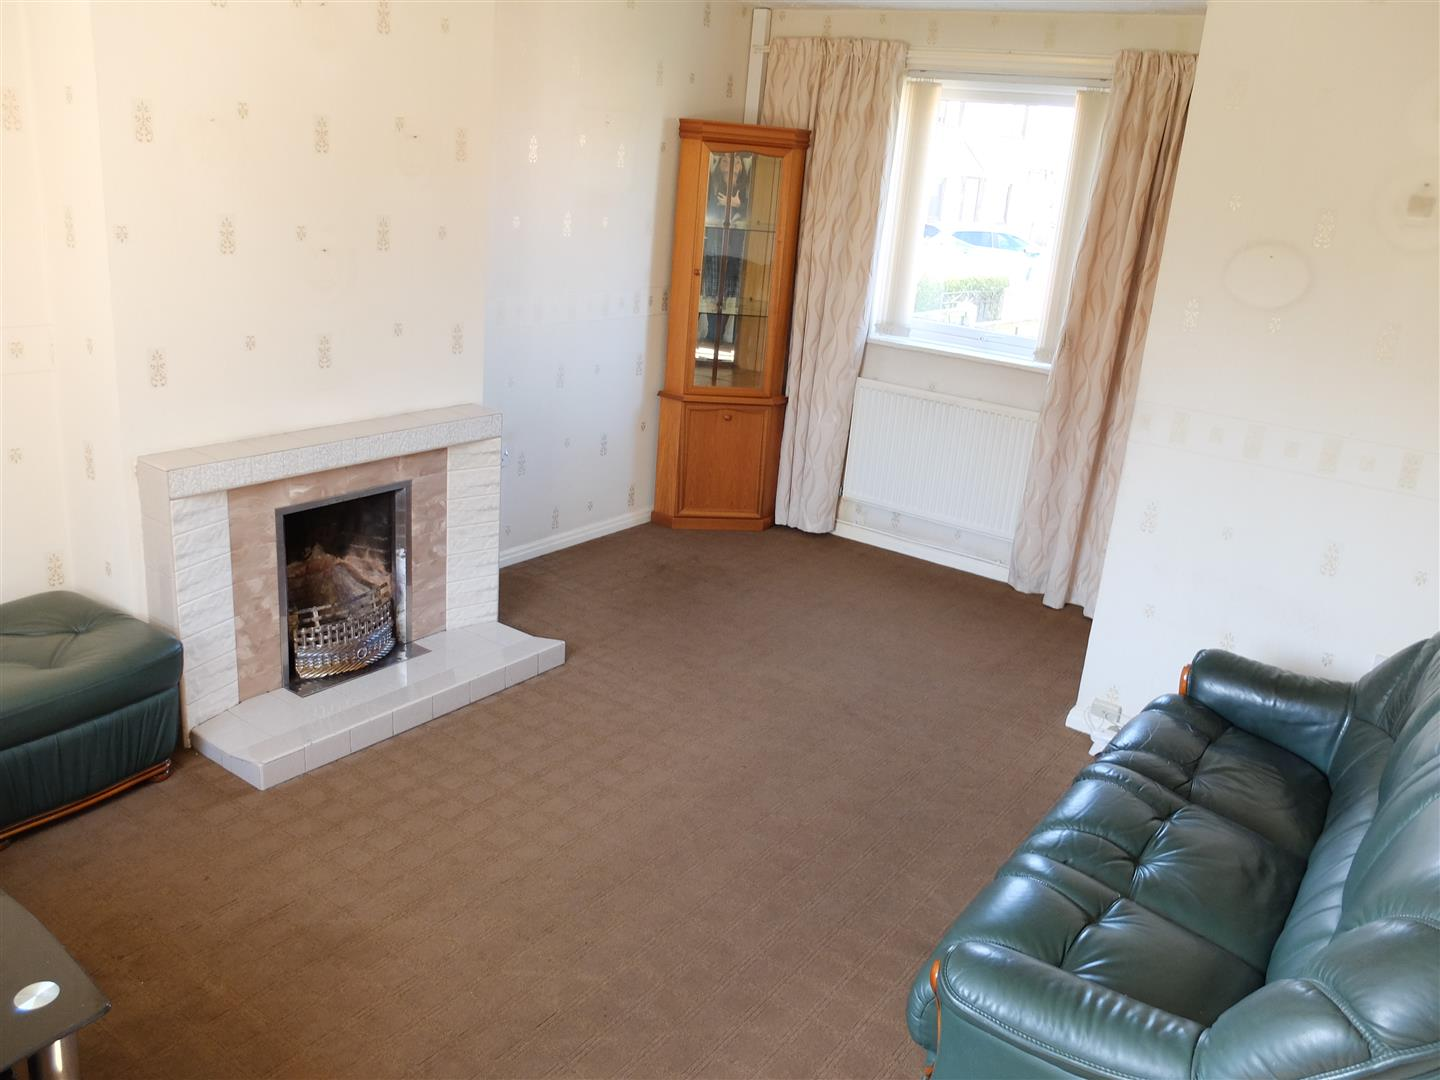 3 Bedrooms House - Mid Terrace For Sale 13 Ridgemount Road Carlisle